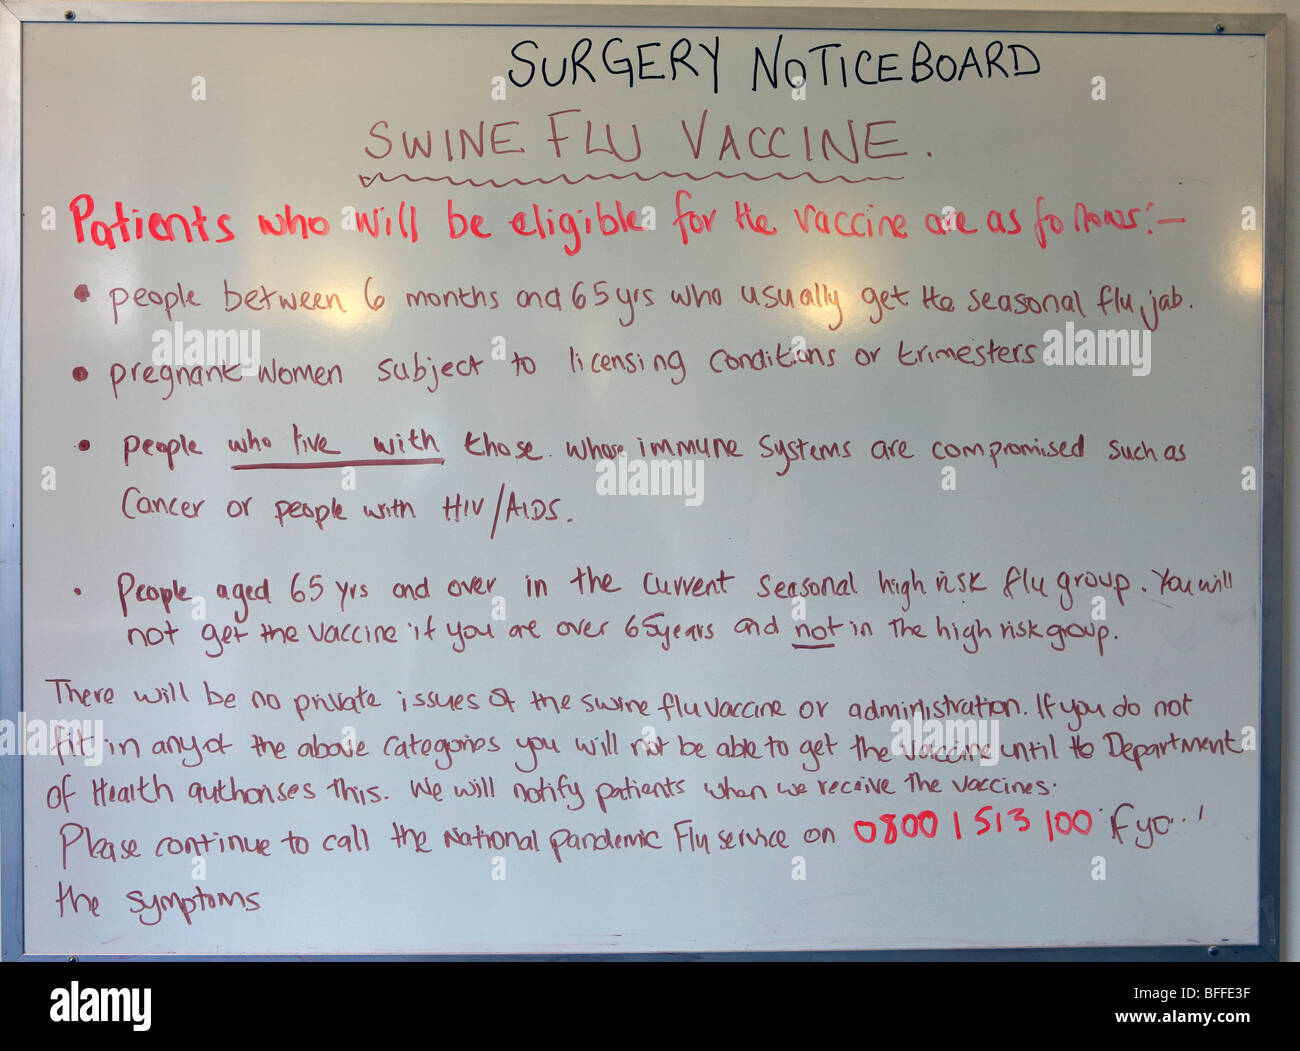 united kingdom doctors surgery noticeboard about swine flu - Stock Image